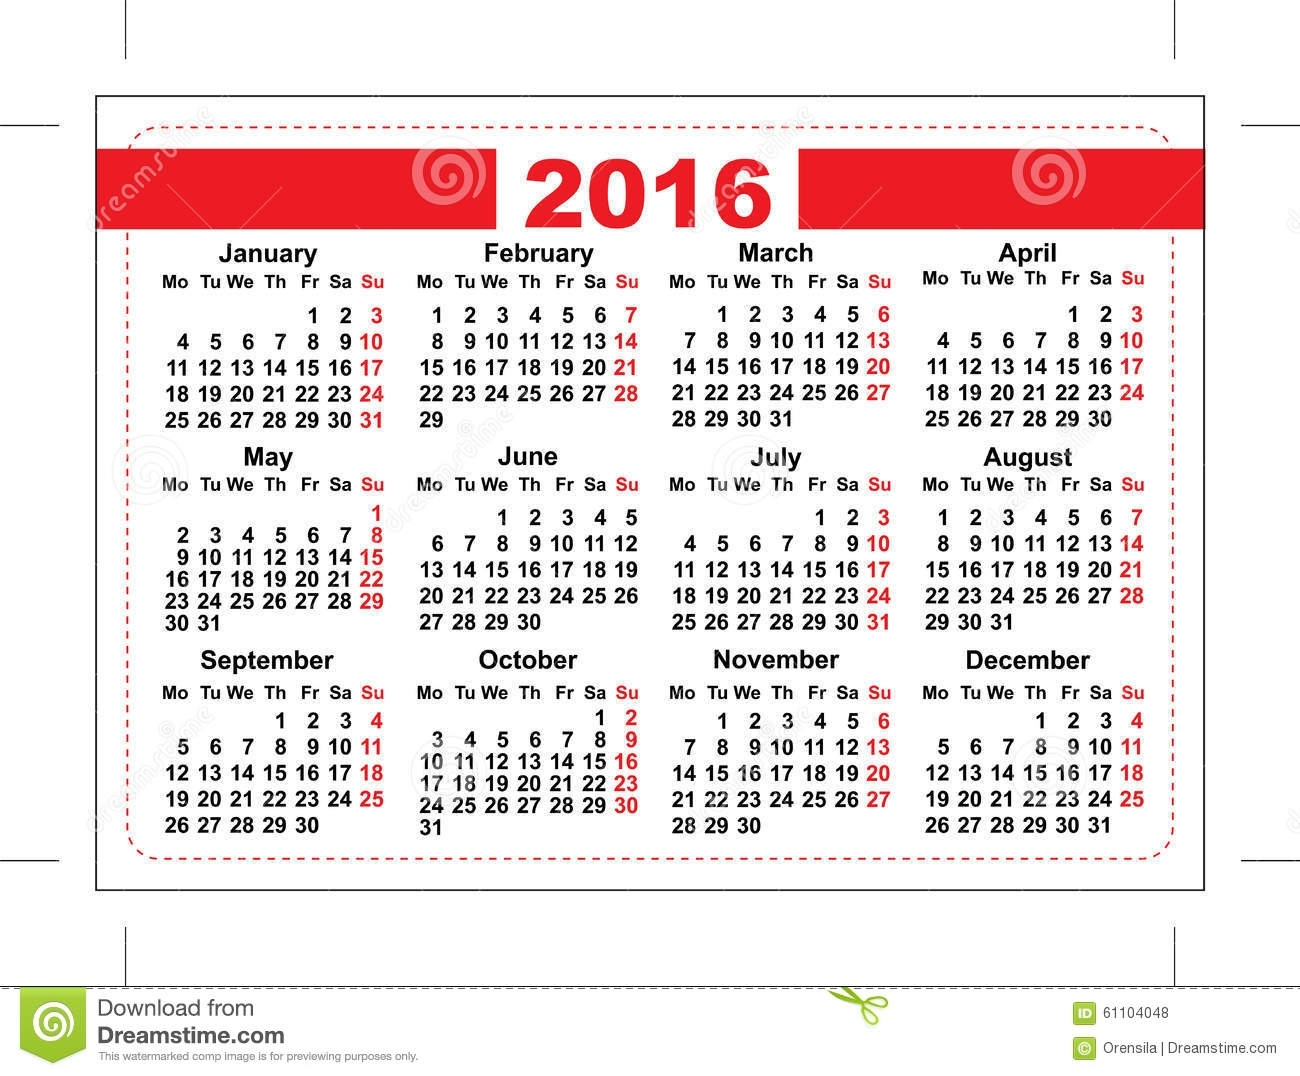 2016 Pocket Calendar. Template Grid. Horizontal Orientation Days Of with Grid Of 31 Days Image